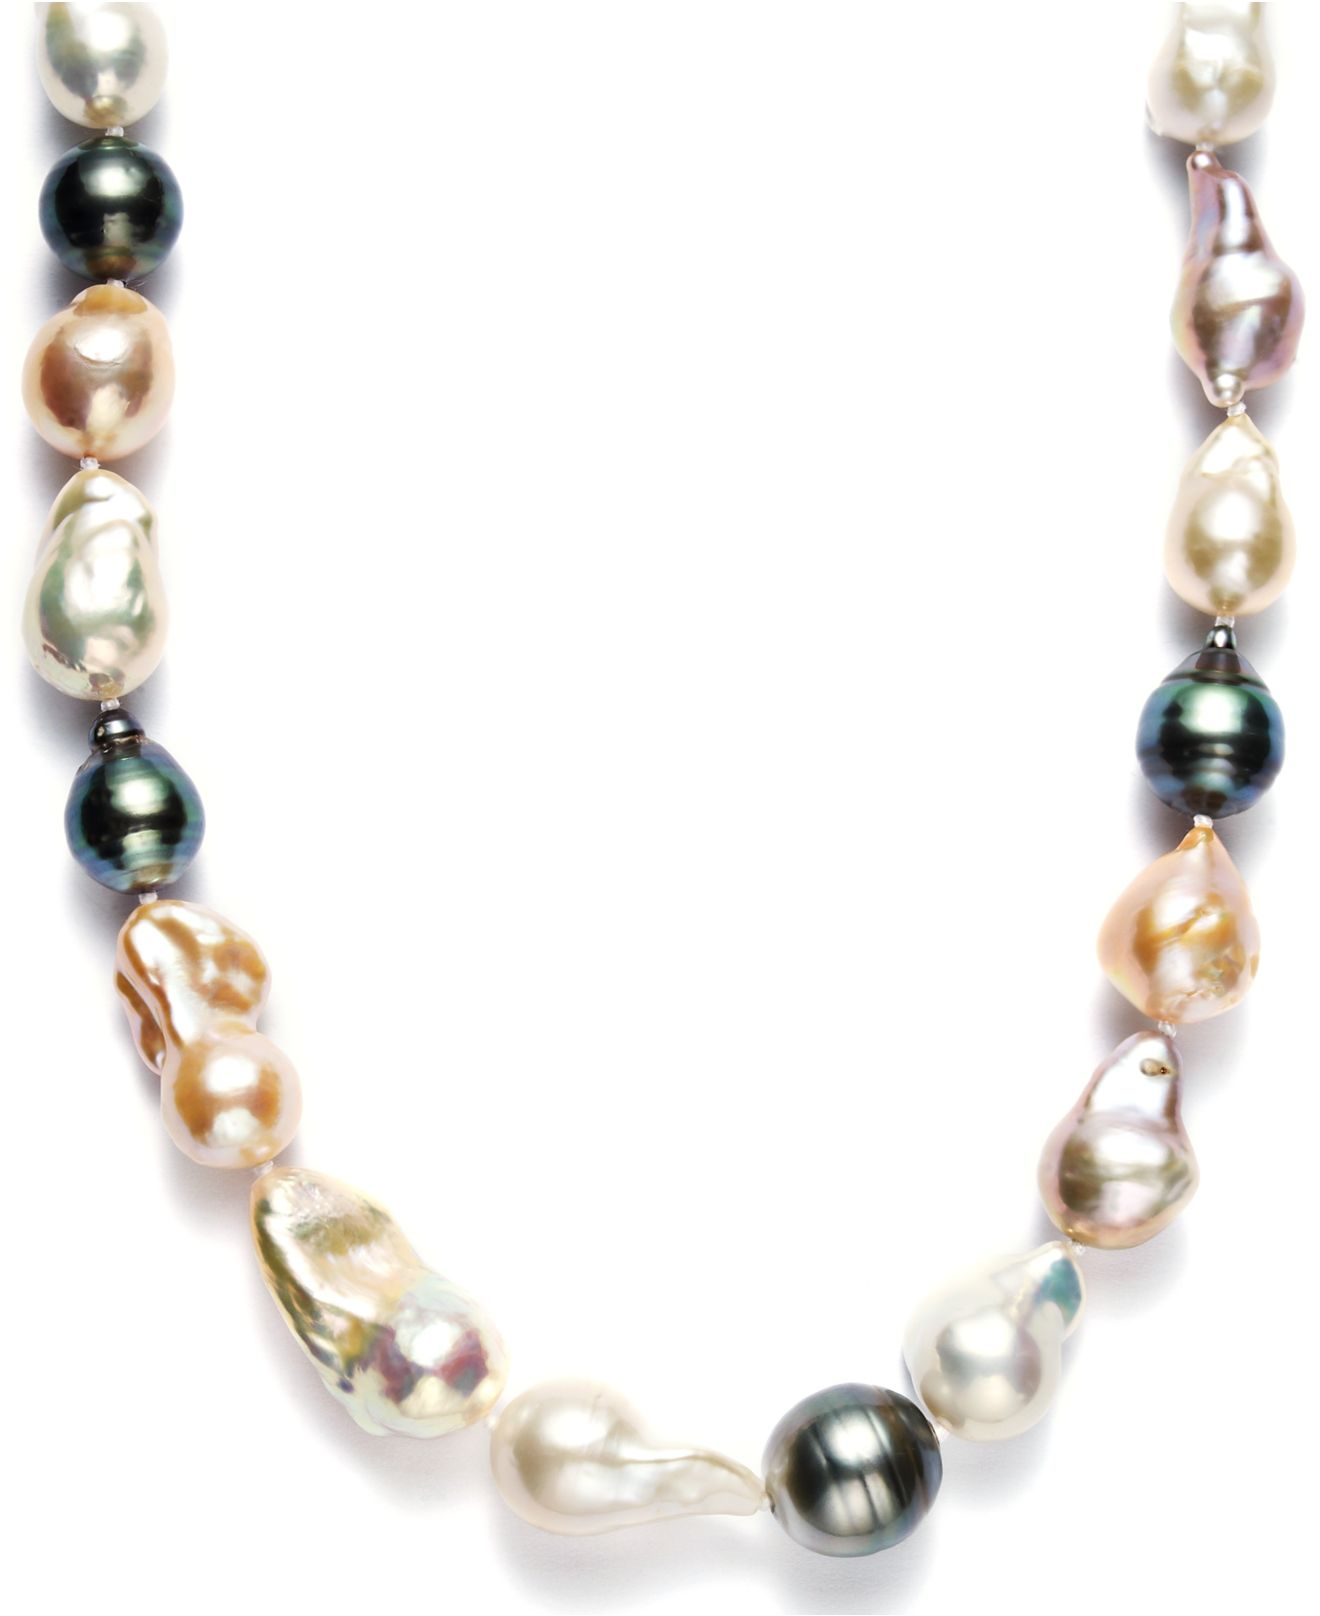 06007bf485f3a Macy's Pearl Necklace, Sterling Silver Cultured Tahitian And Multicolor  Freshwater Pearl Baroque Necklace (9-11mm)